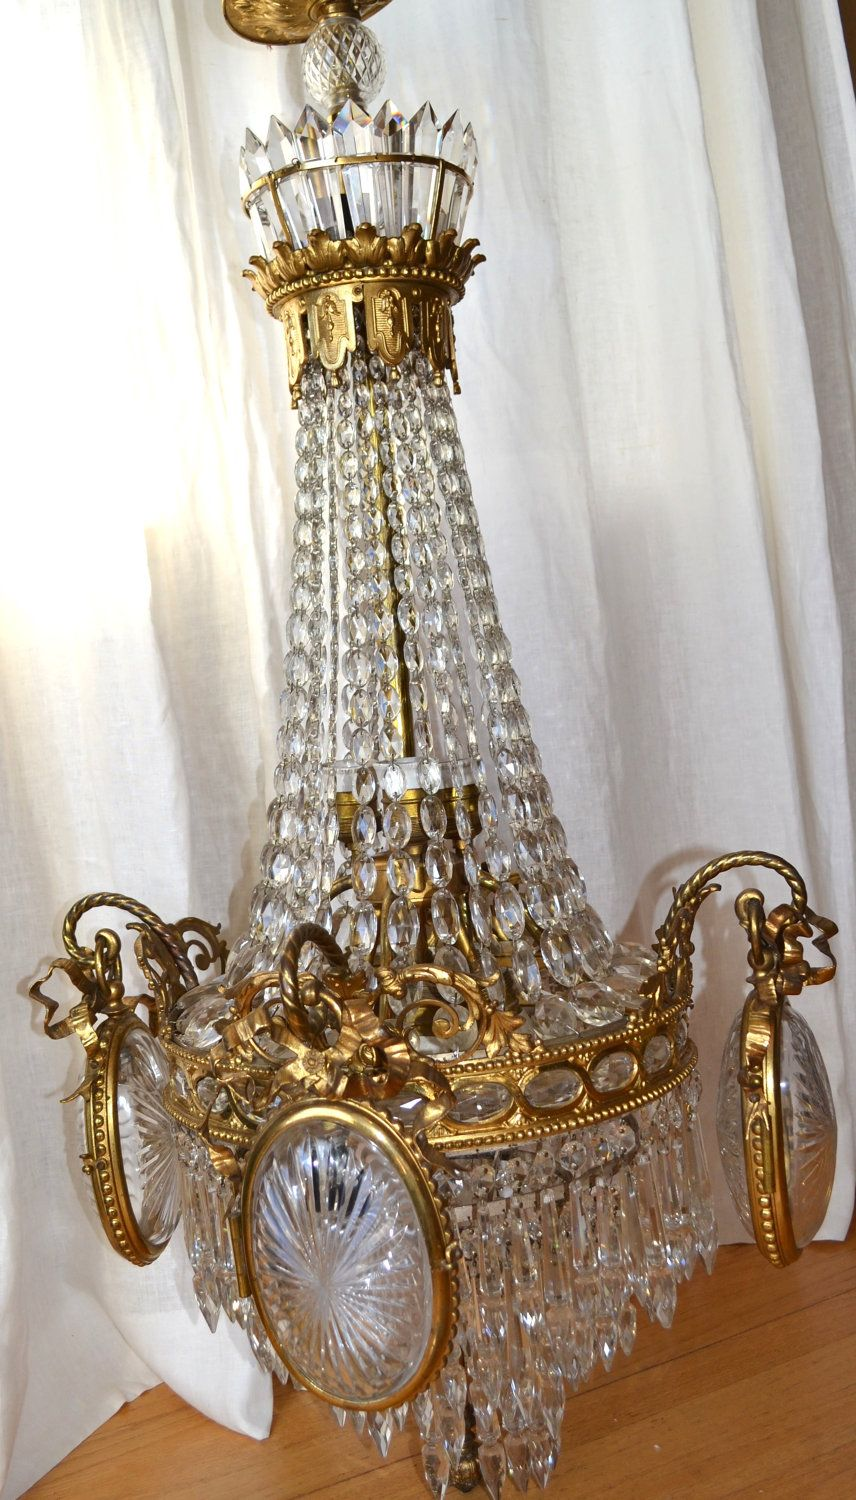 Antique Victorian European Crystal Empire Chandelier. - Antique Victorian European Crystal Empire Chandelier. Chandy Love